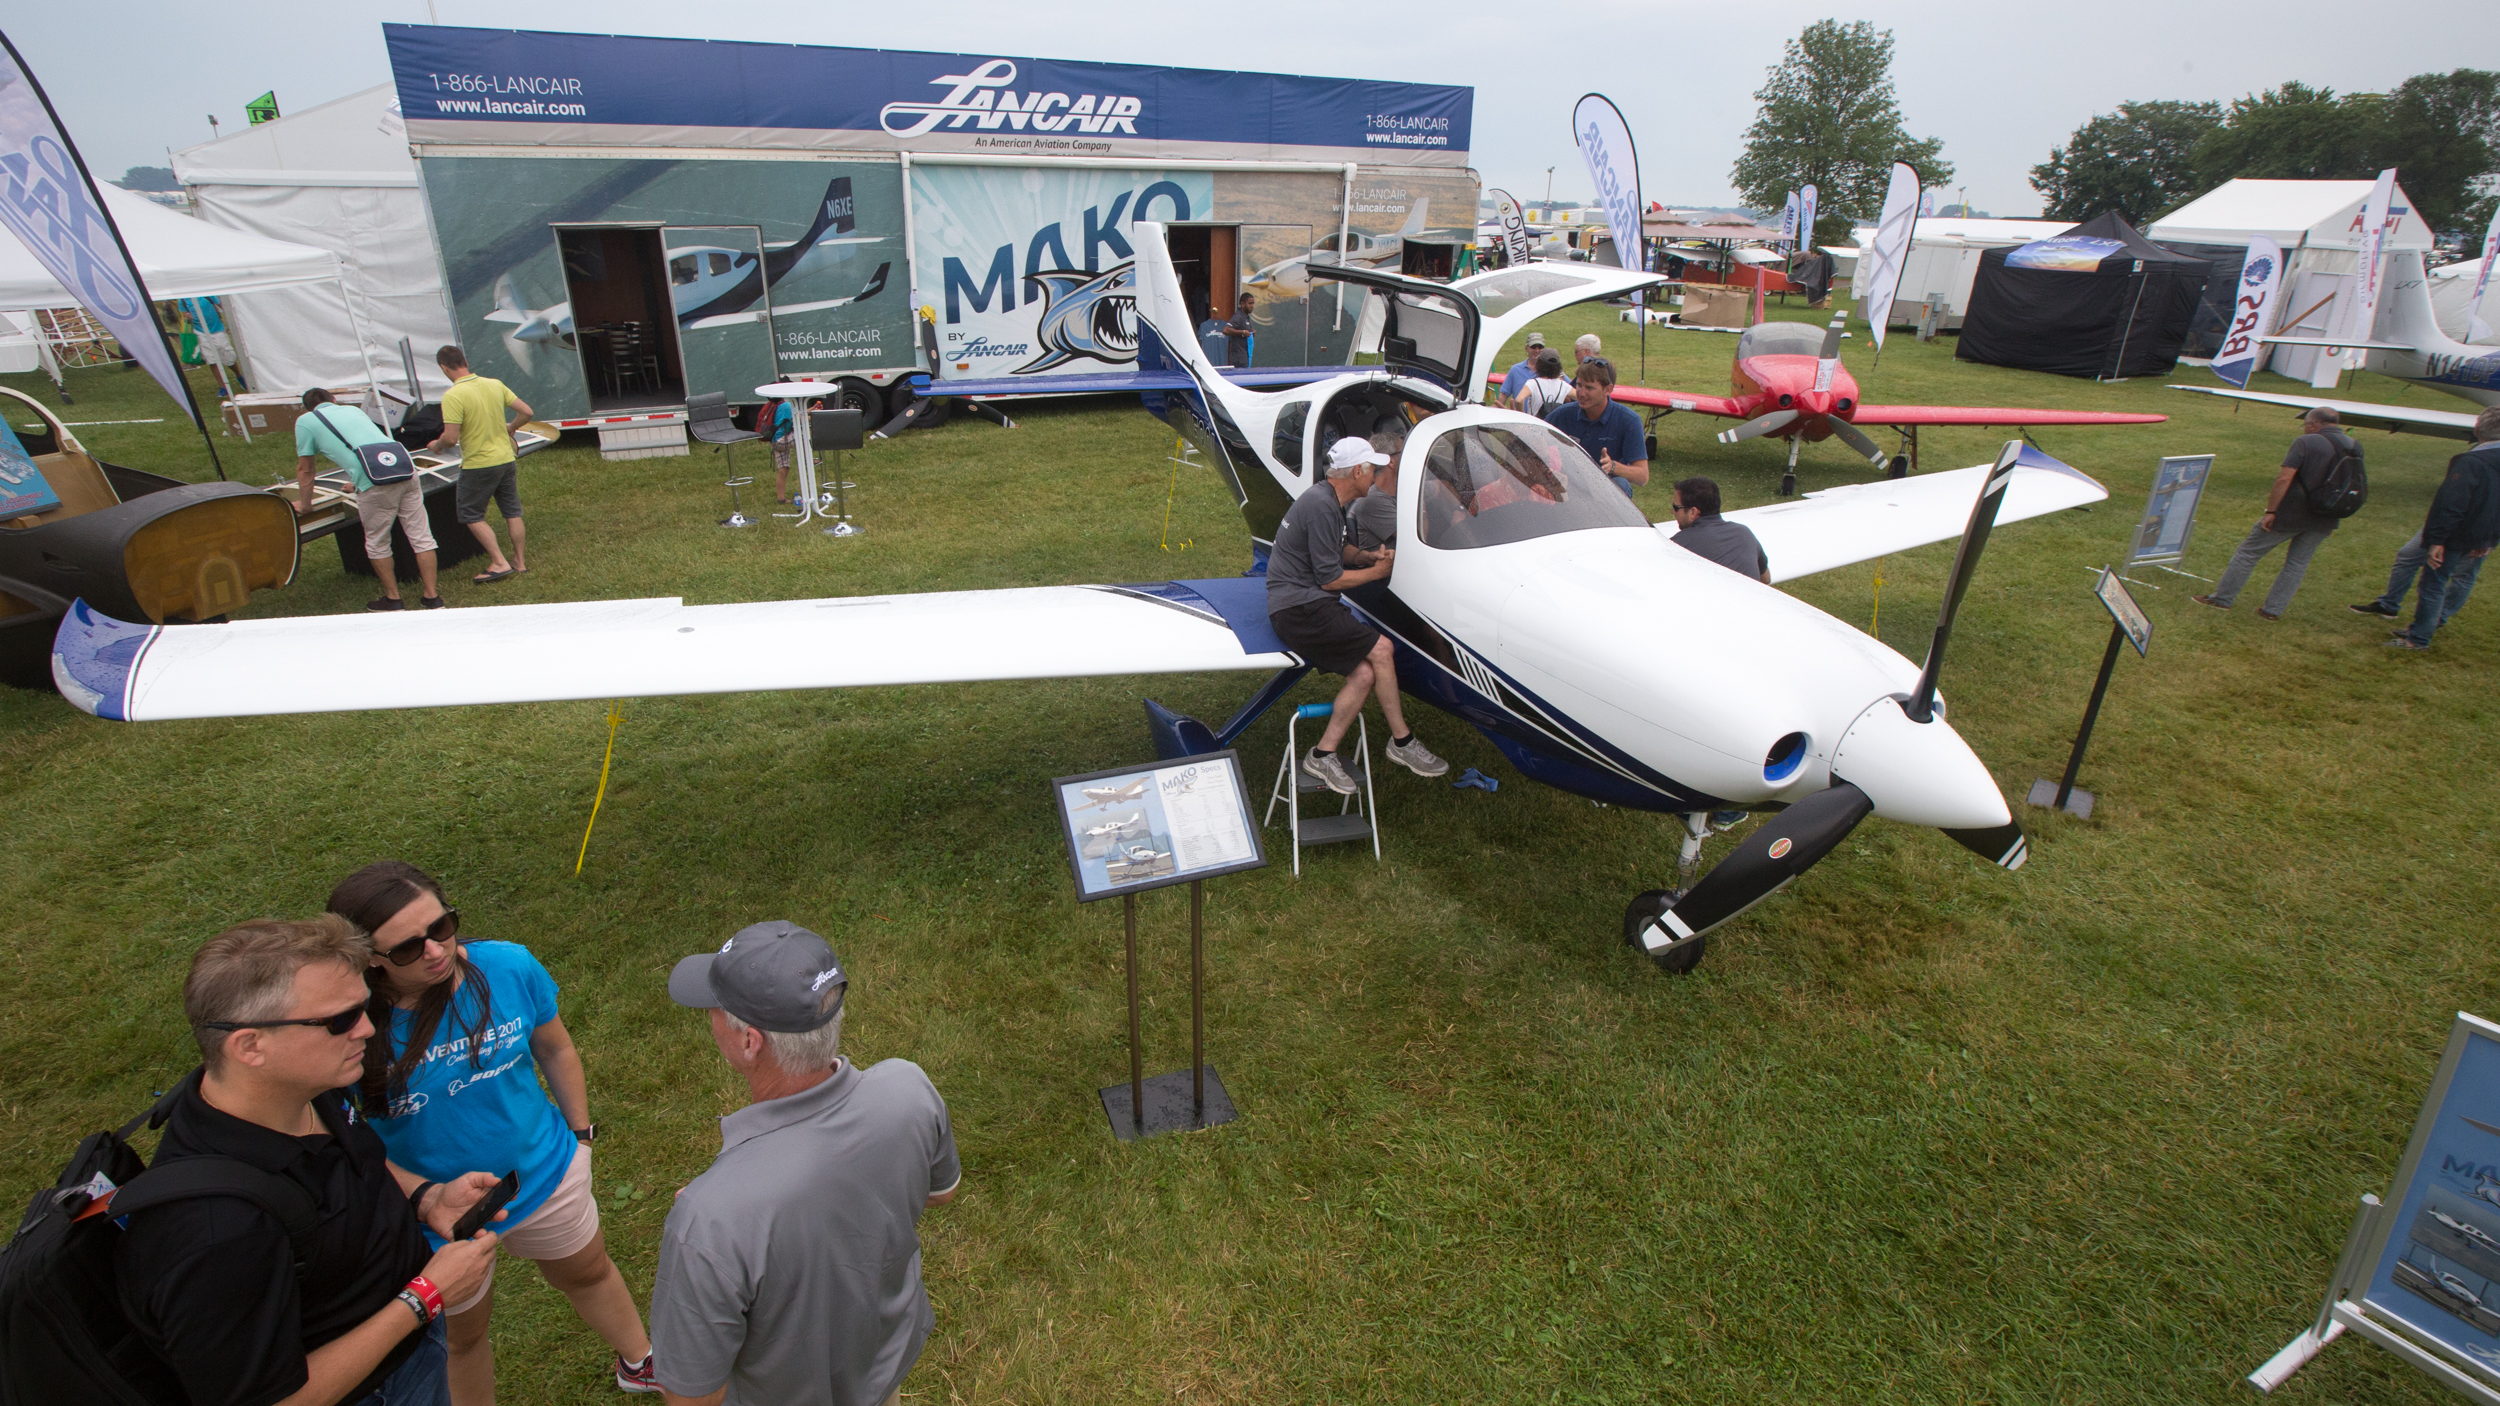 The Lancair Mako draws interest at EAA AirVenture in Oshkosh, Wisconsin. Jim Moore photo.